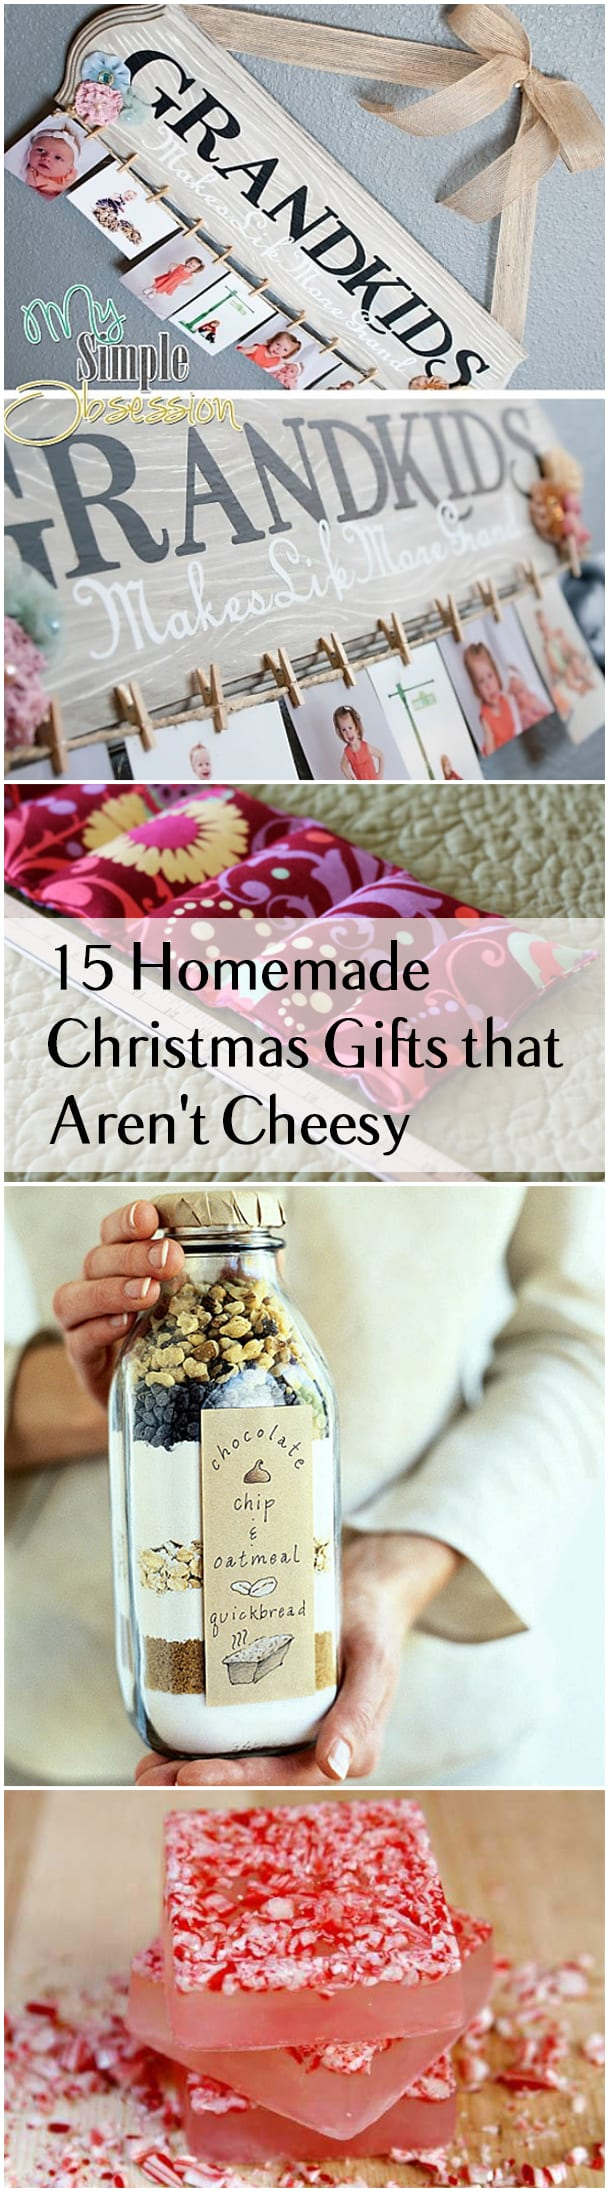 15 homemade christmas gifts that aren t cheesy